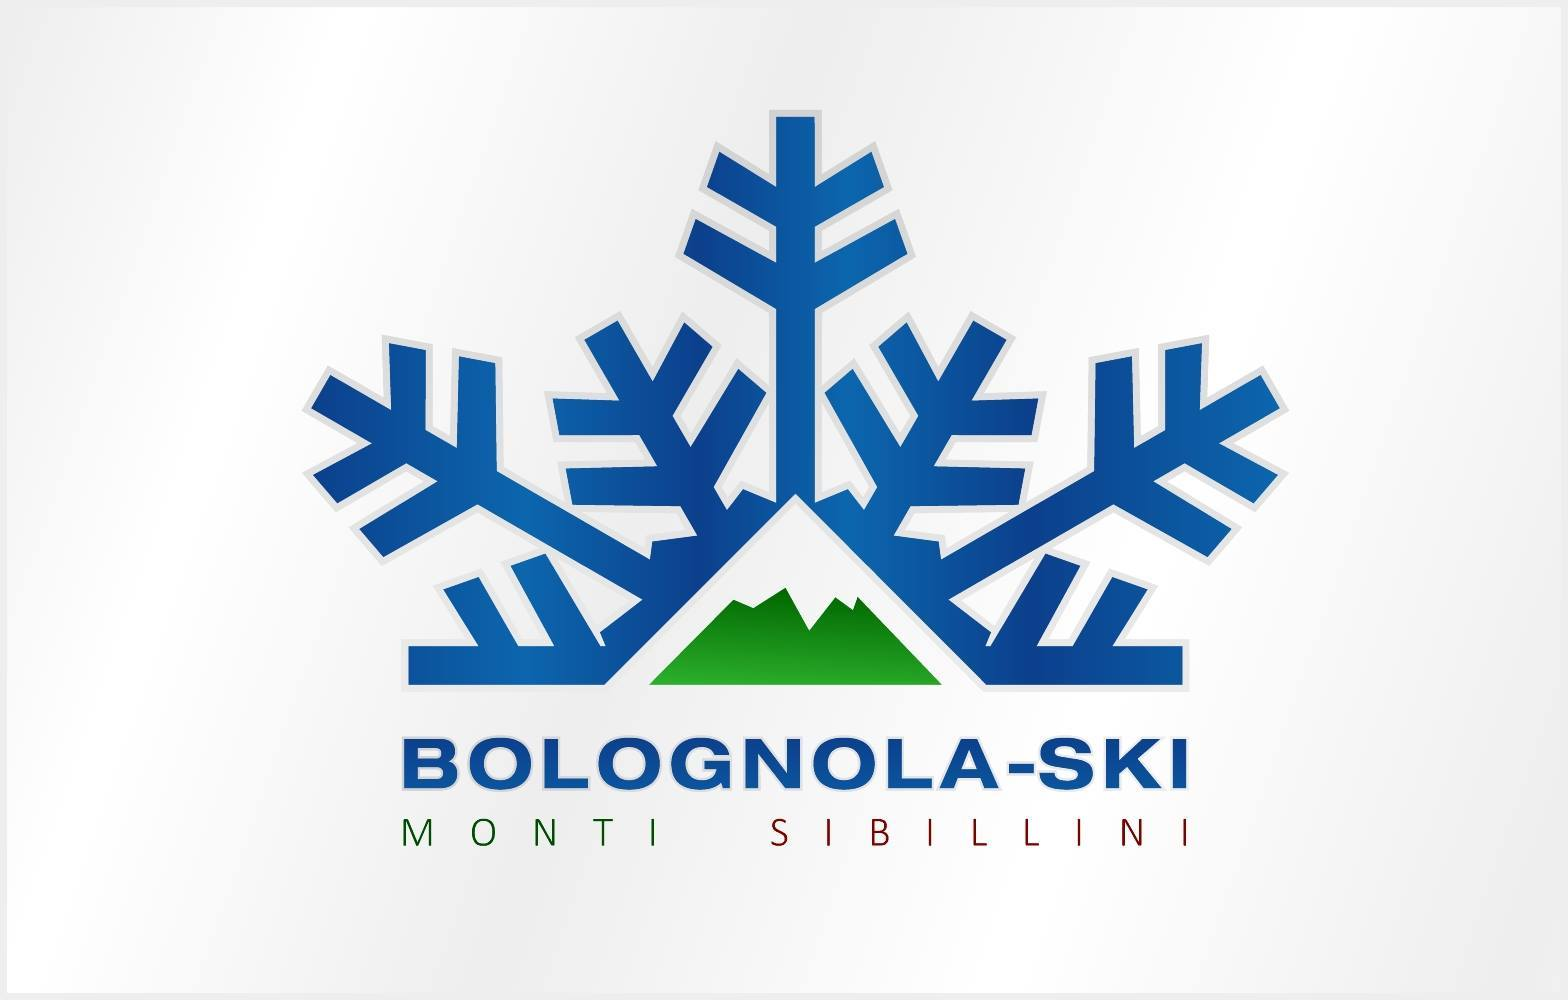 Le Funivie Bolognola Ski su SciMarche.it